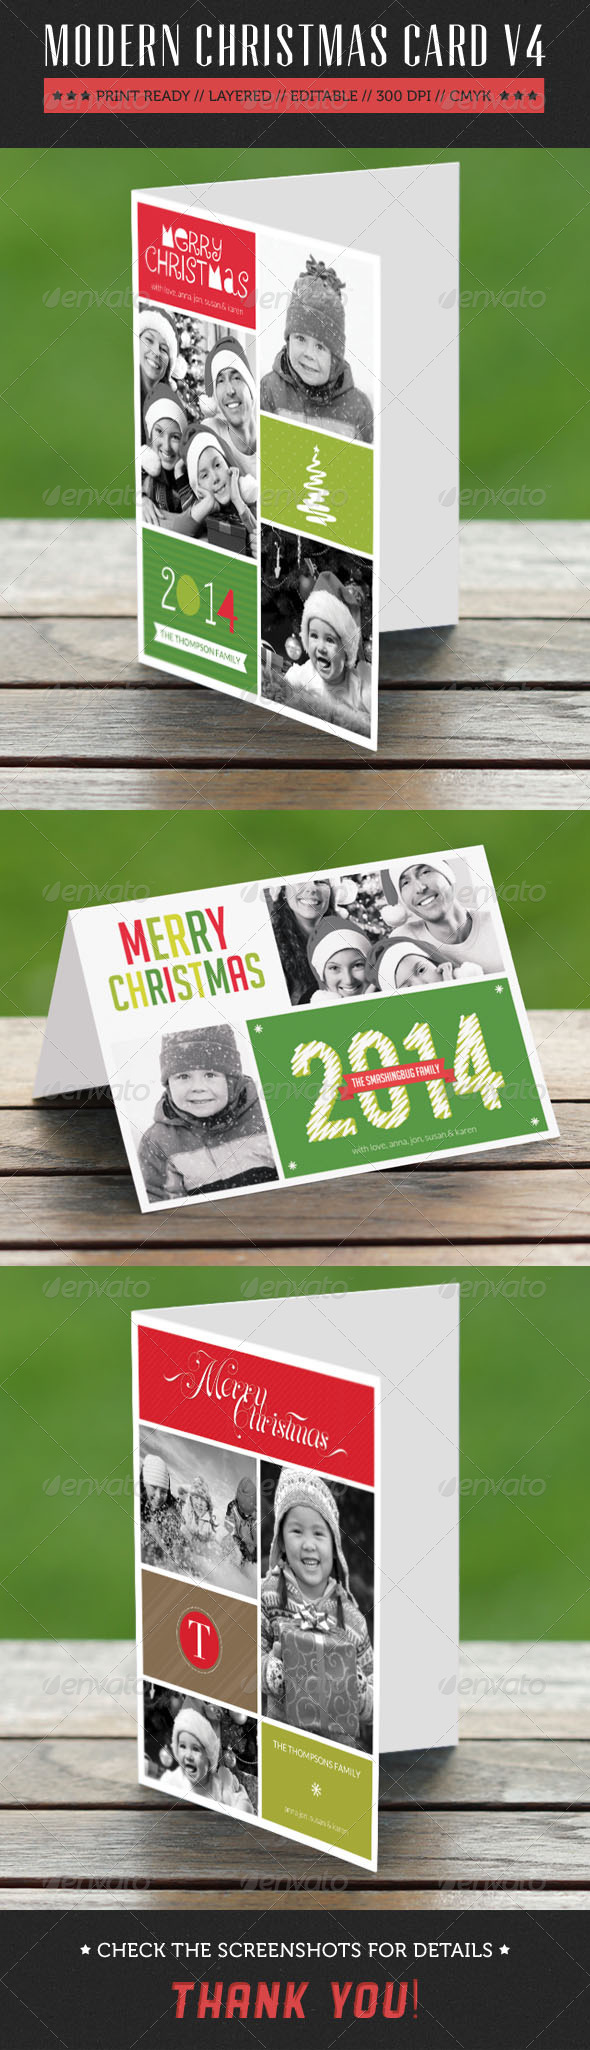 Modern Christmas Card V4 - Holiday Greeting Cards